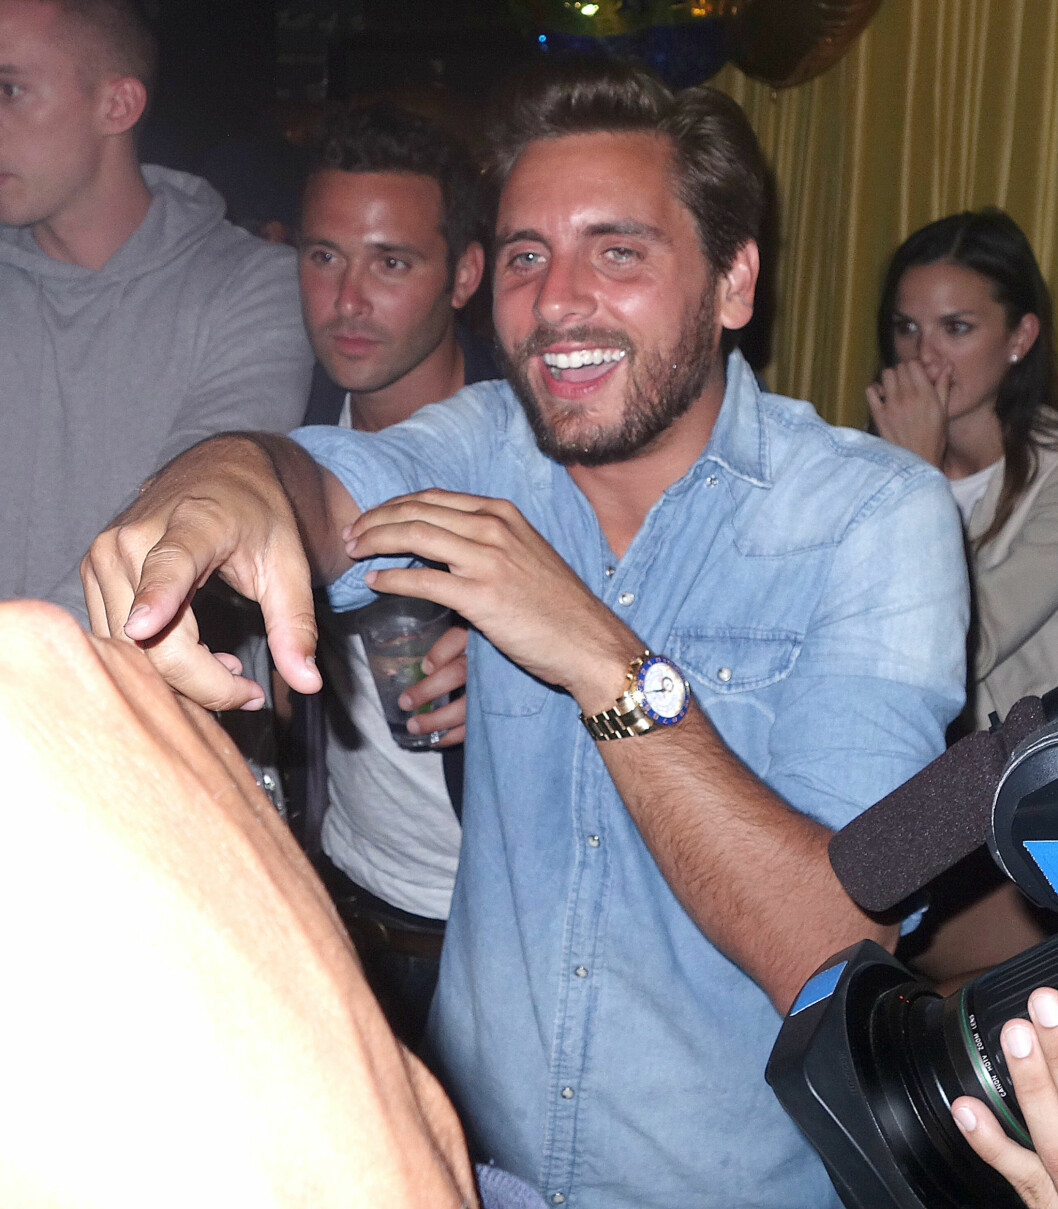 PARTYHUMØR: Scott Disick virket å kose seg på nattklubben, men så relativt beruset ut. Foto: Splash News/All Over Press